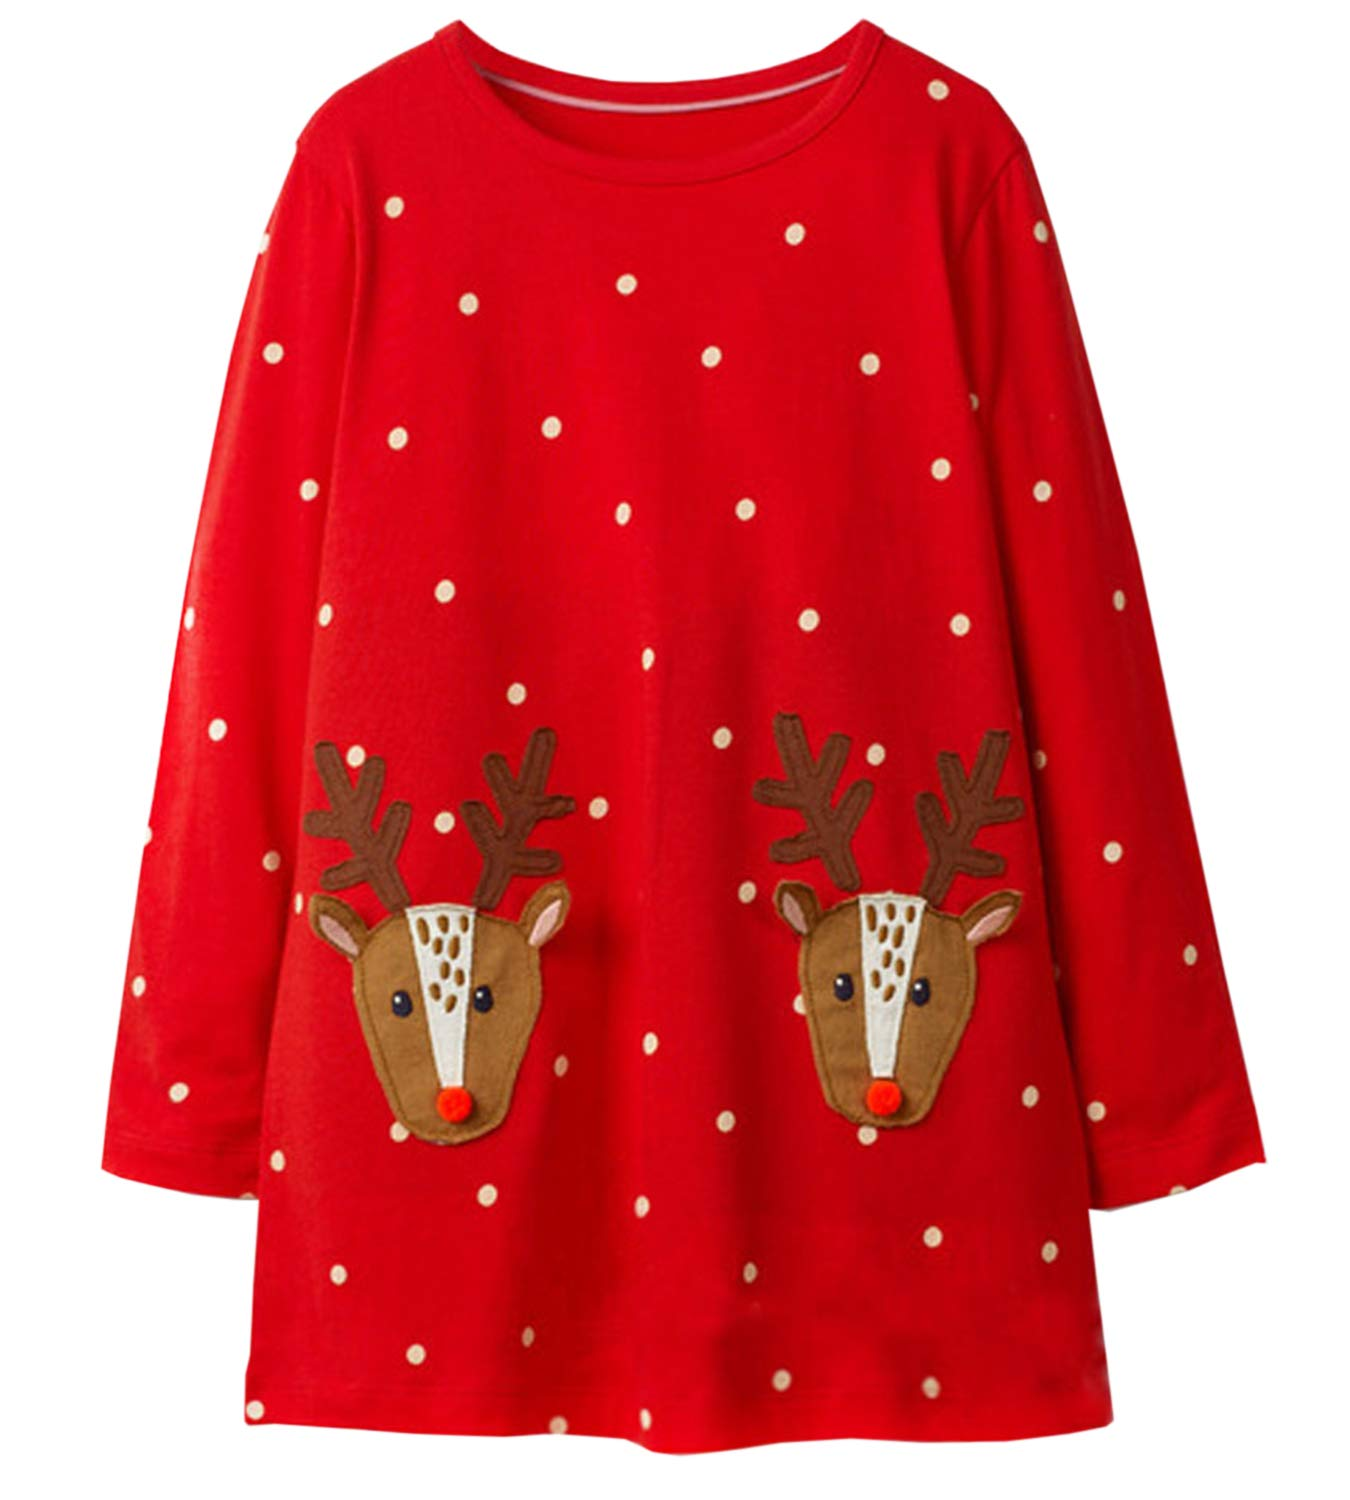 LYXIOF Girls Christmas Cotton Long Sleeve Casual Dress Toddler Reindeer Cartoon Applique Dresses D 3T